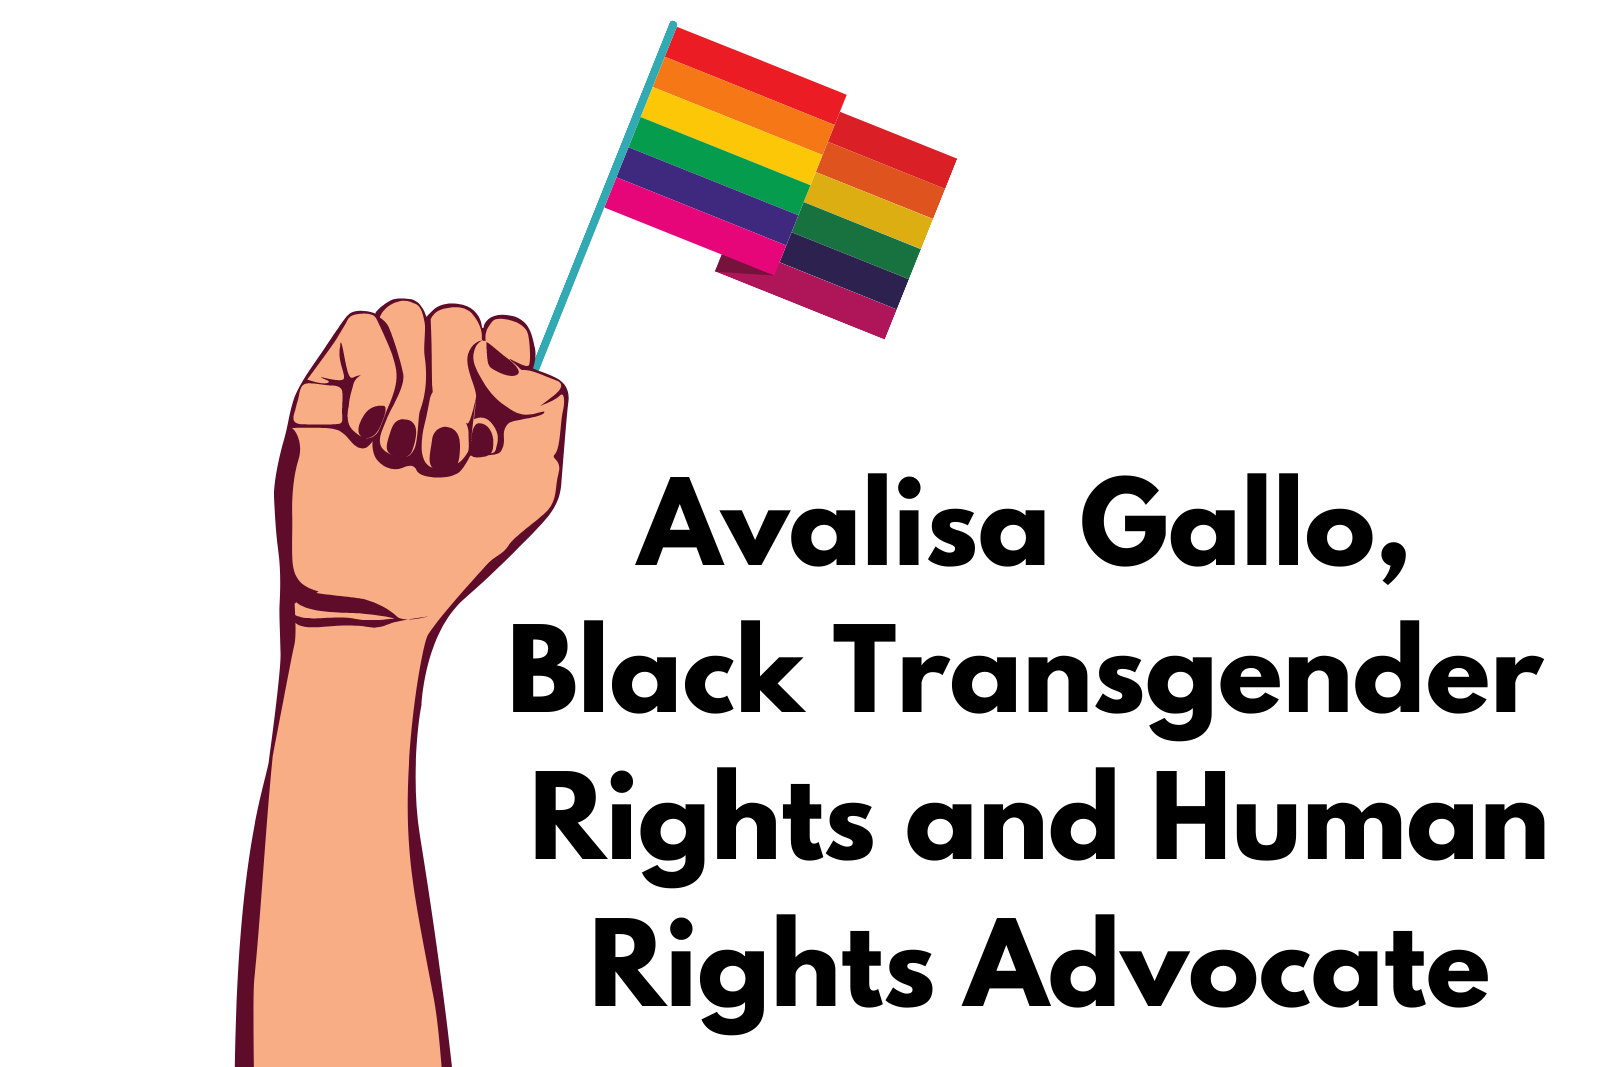 Ep. 30 Avalisa Gallo, Transgender Rights, and Human Rights Advocate